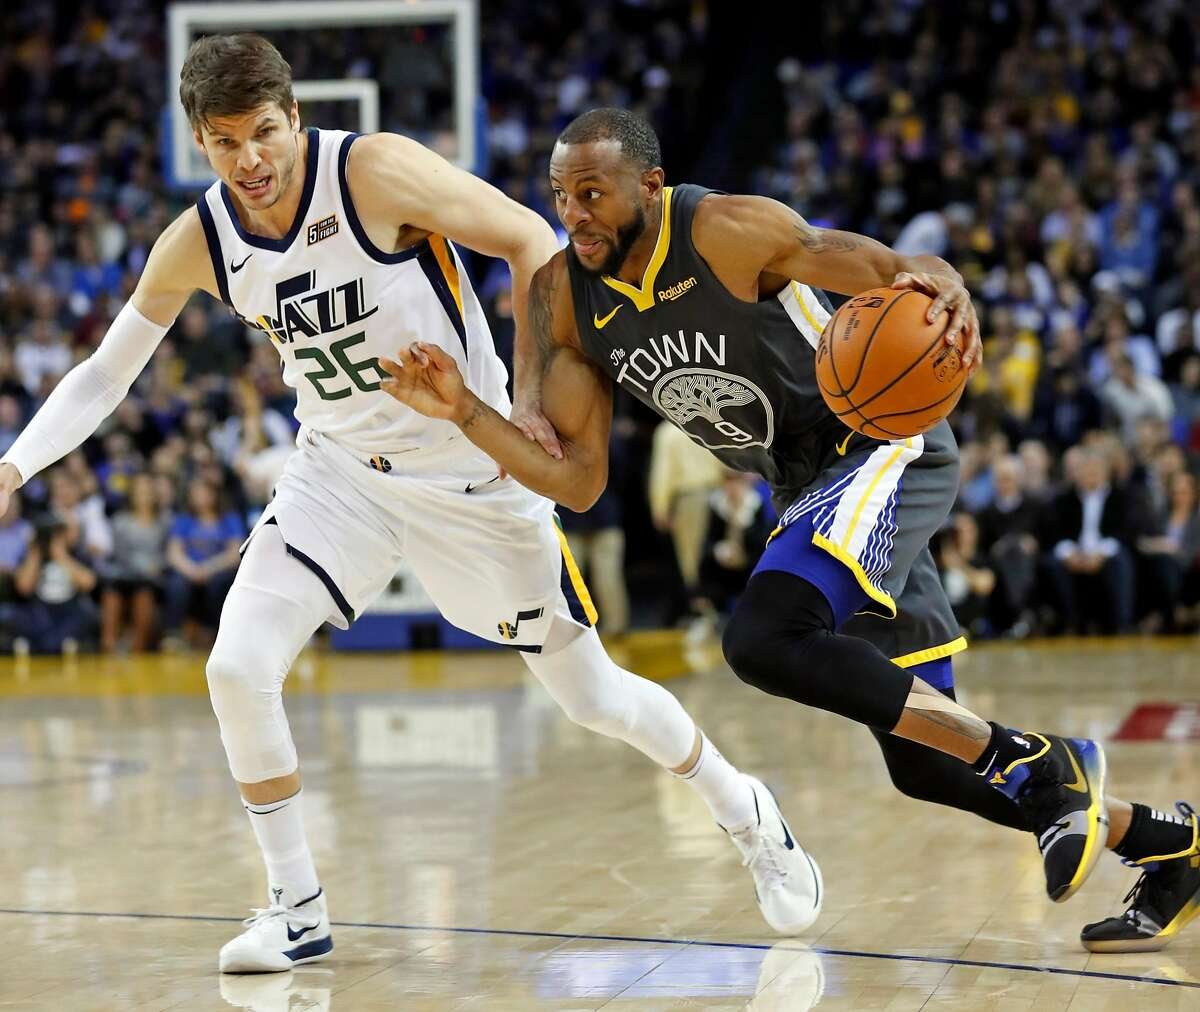 Golden State Warriors' Andre Iguodala drives against Utah Jazz' Kyle Korver during Warriors' 115-108 win in NBA game at Oracle Arena in Oakland, Calif., on Tuesday, February 12, 2019.